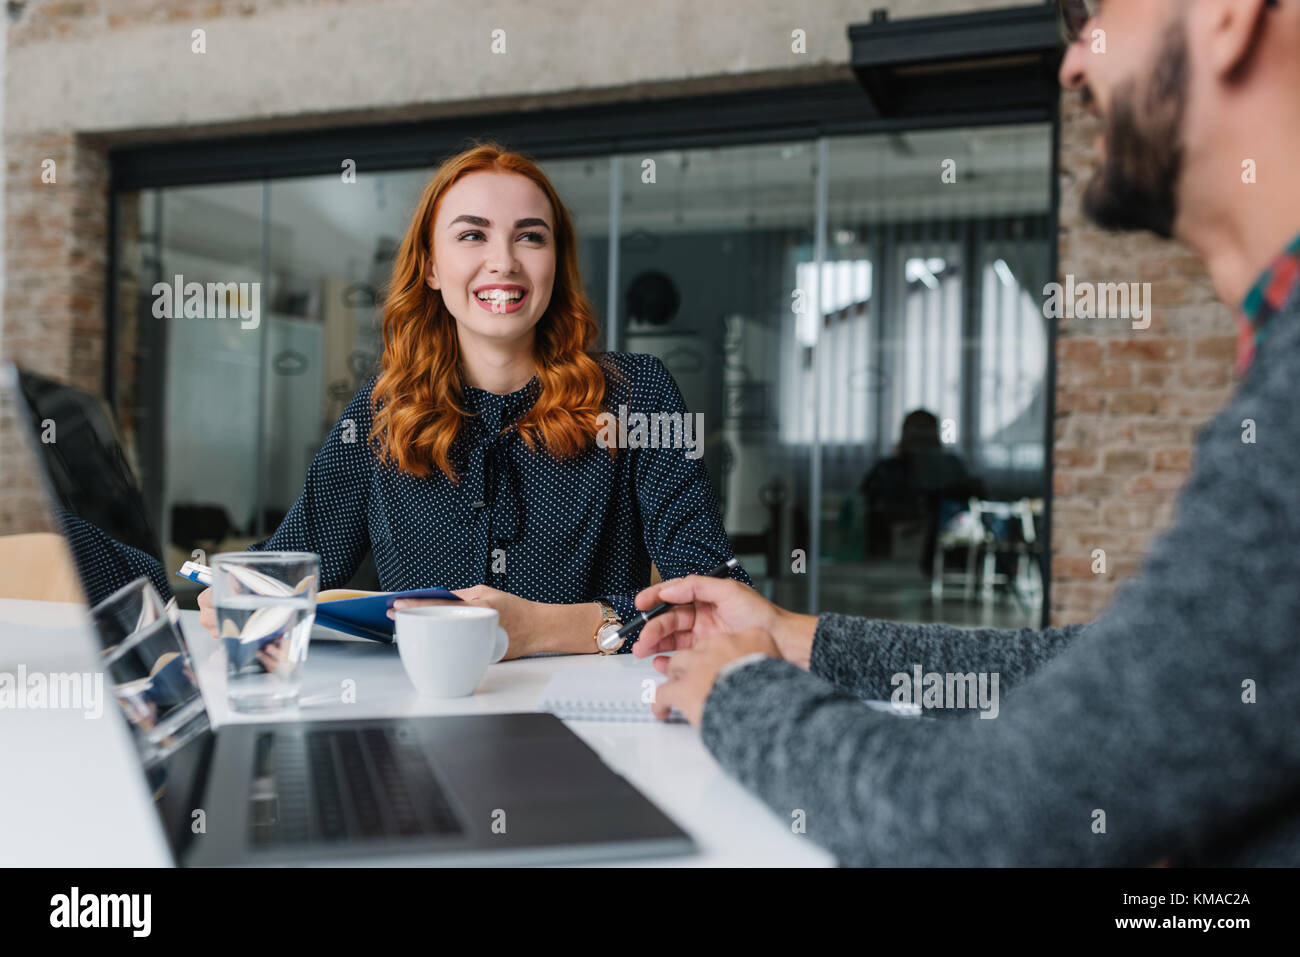 Having her first job interview - Stock Image